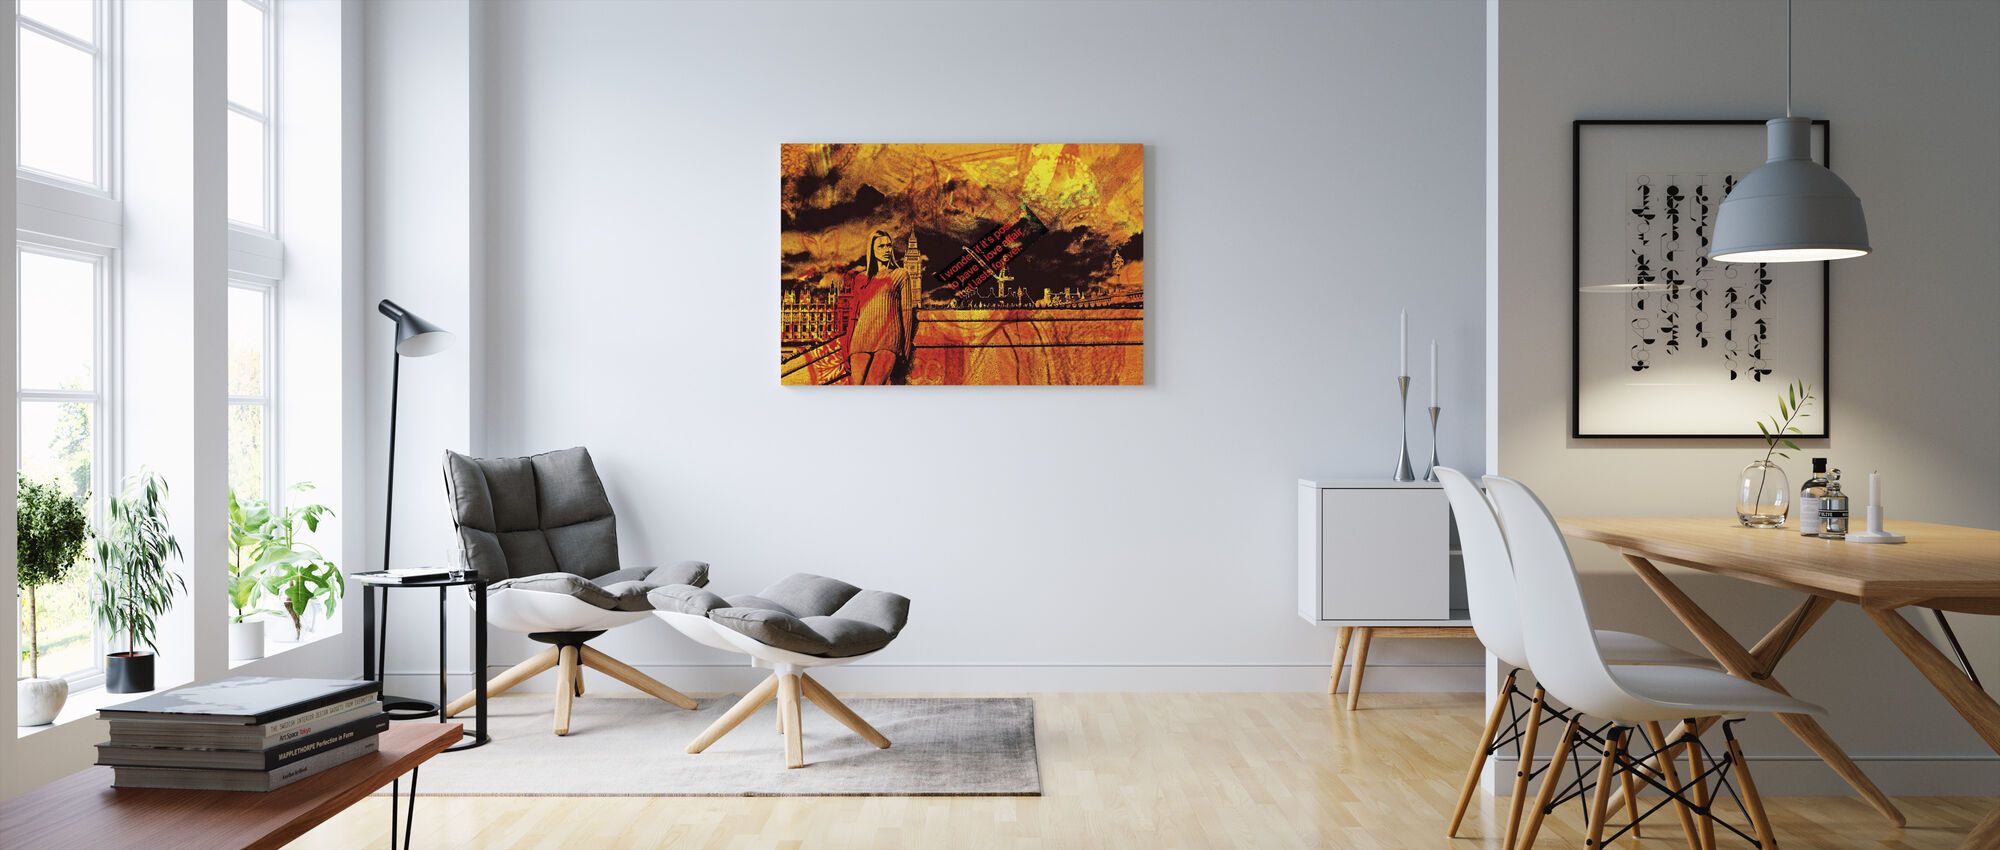 Lonely City - Canvas print - Living Room